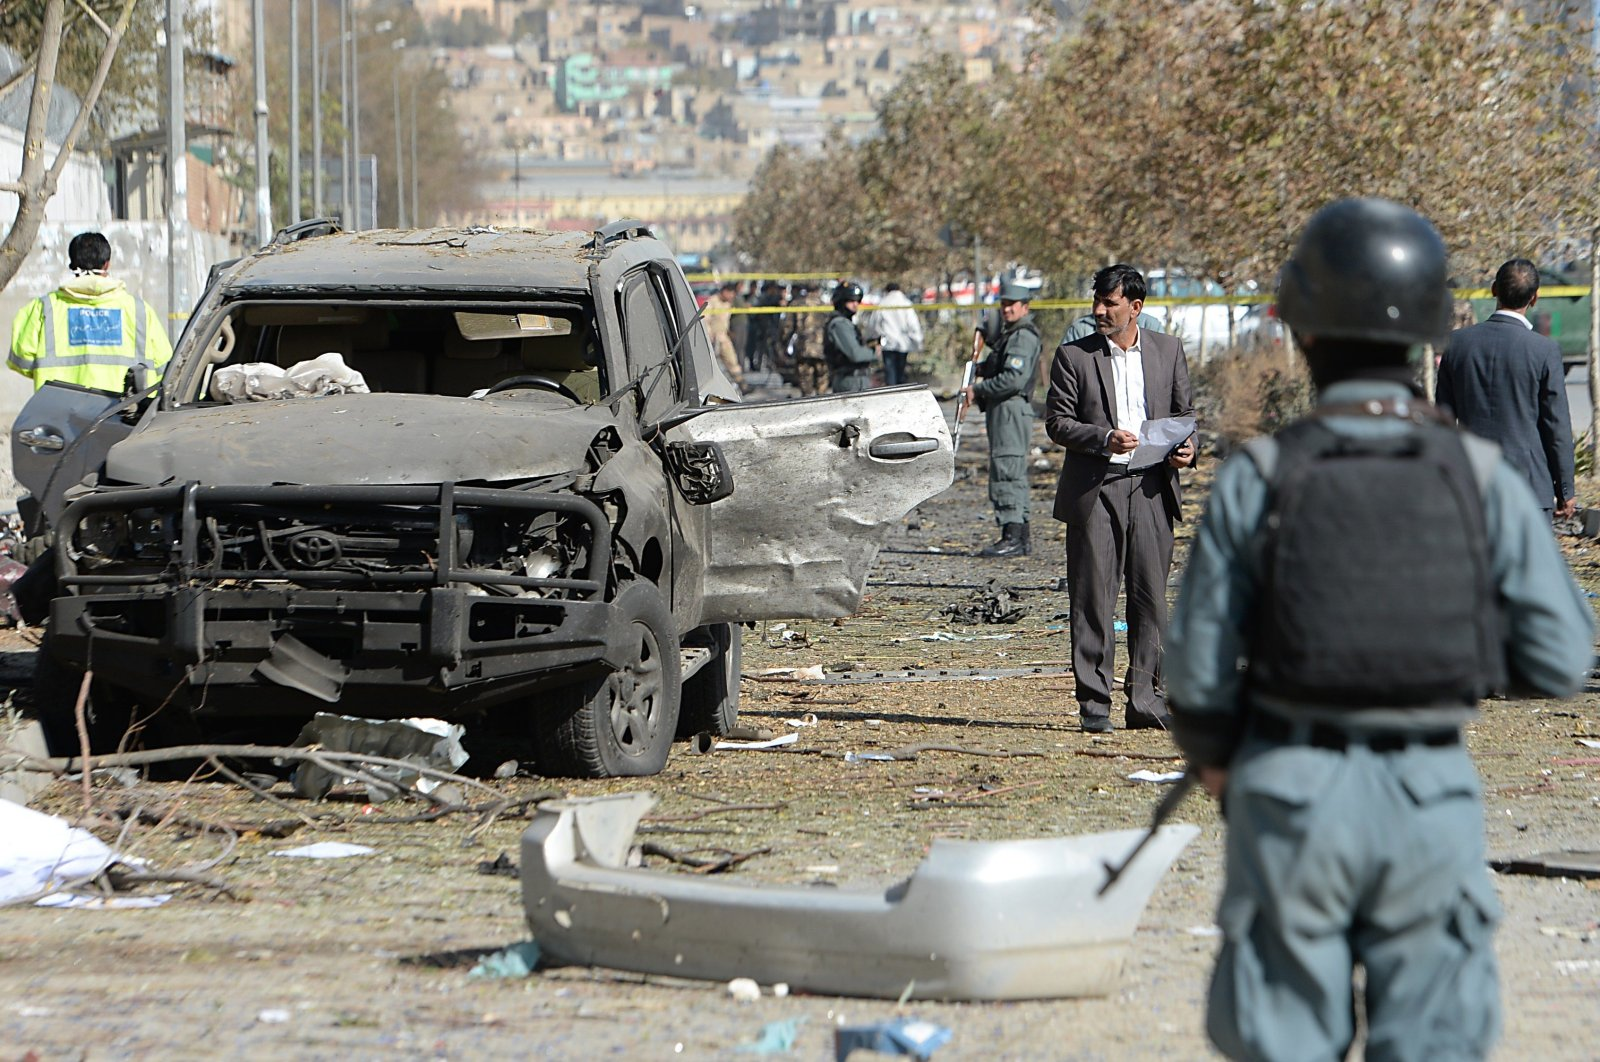 Afghan investigators inspect wreckage at the site where a suicide bomber targeted a vehicle convoy of Afghan lawmakers in Kabul on Nov. 16, 2014. (AFP Photo)